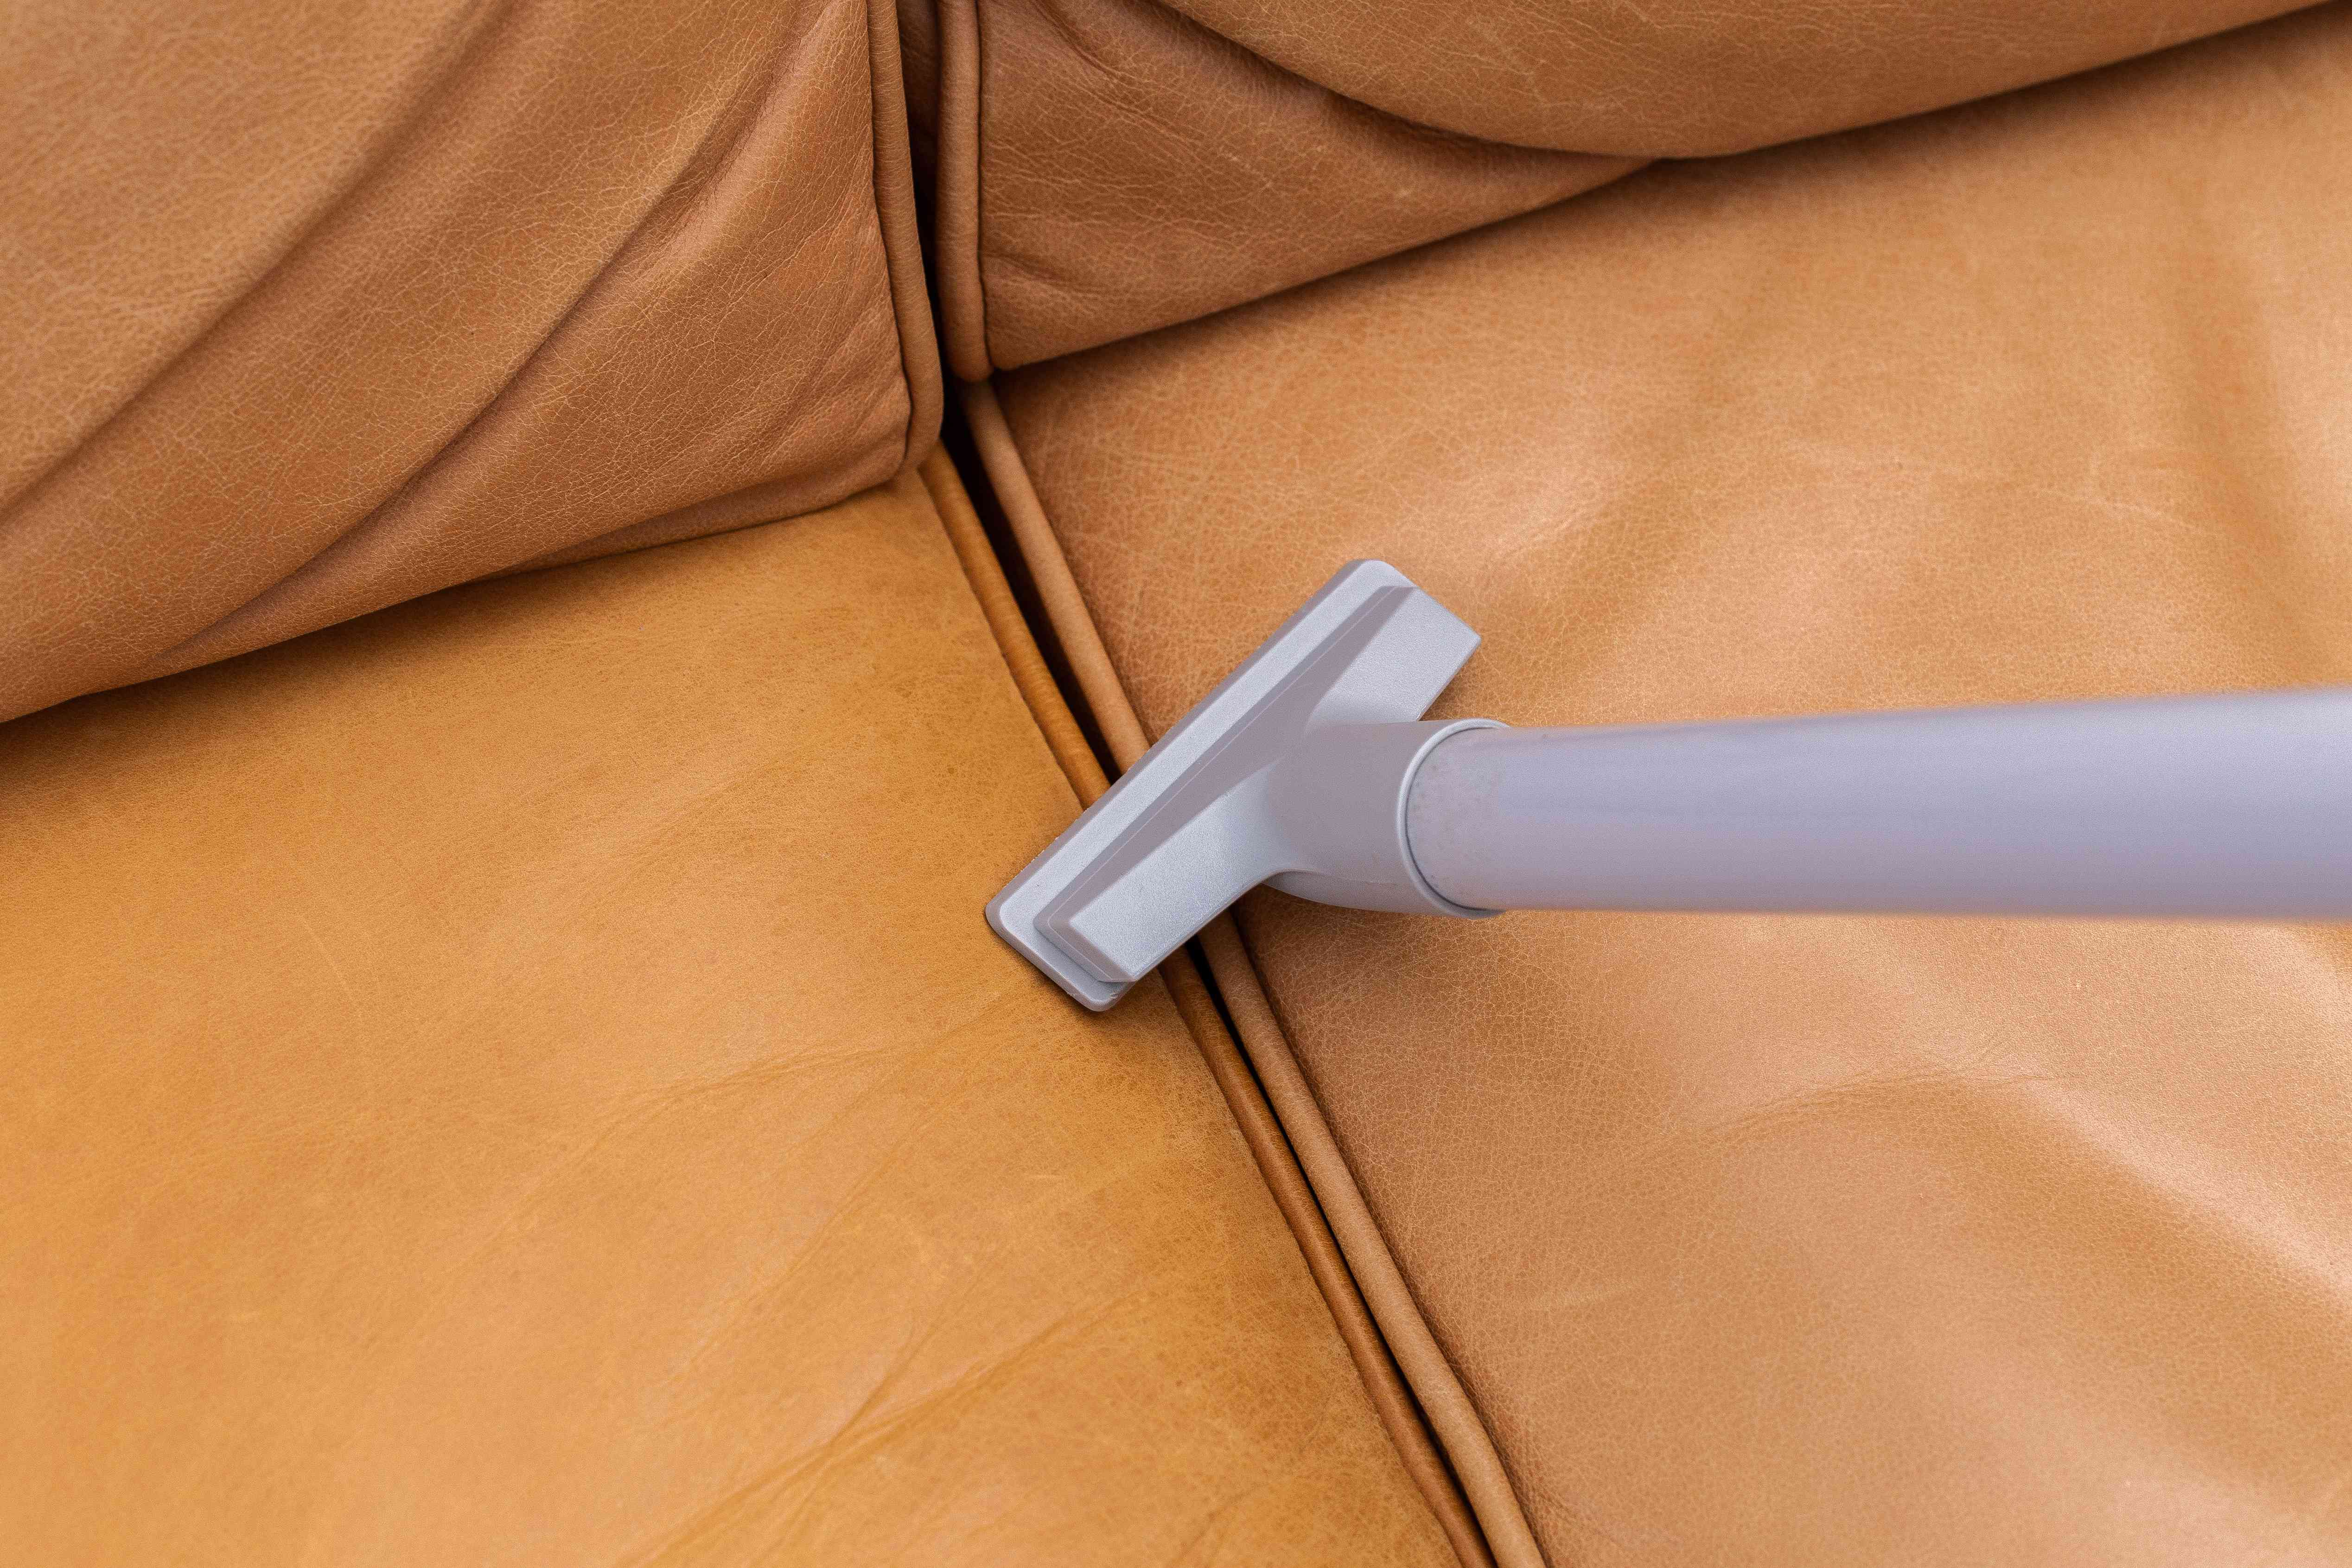 Vacuum with upholstery brush cleaning in between brown leather couch